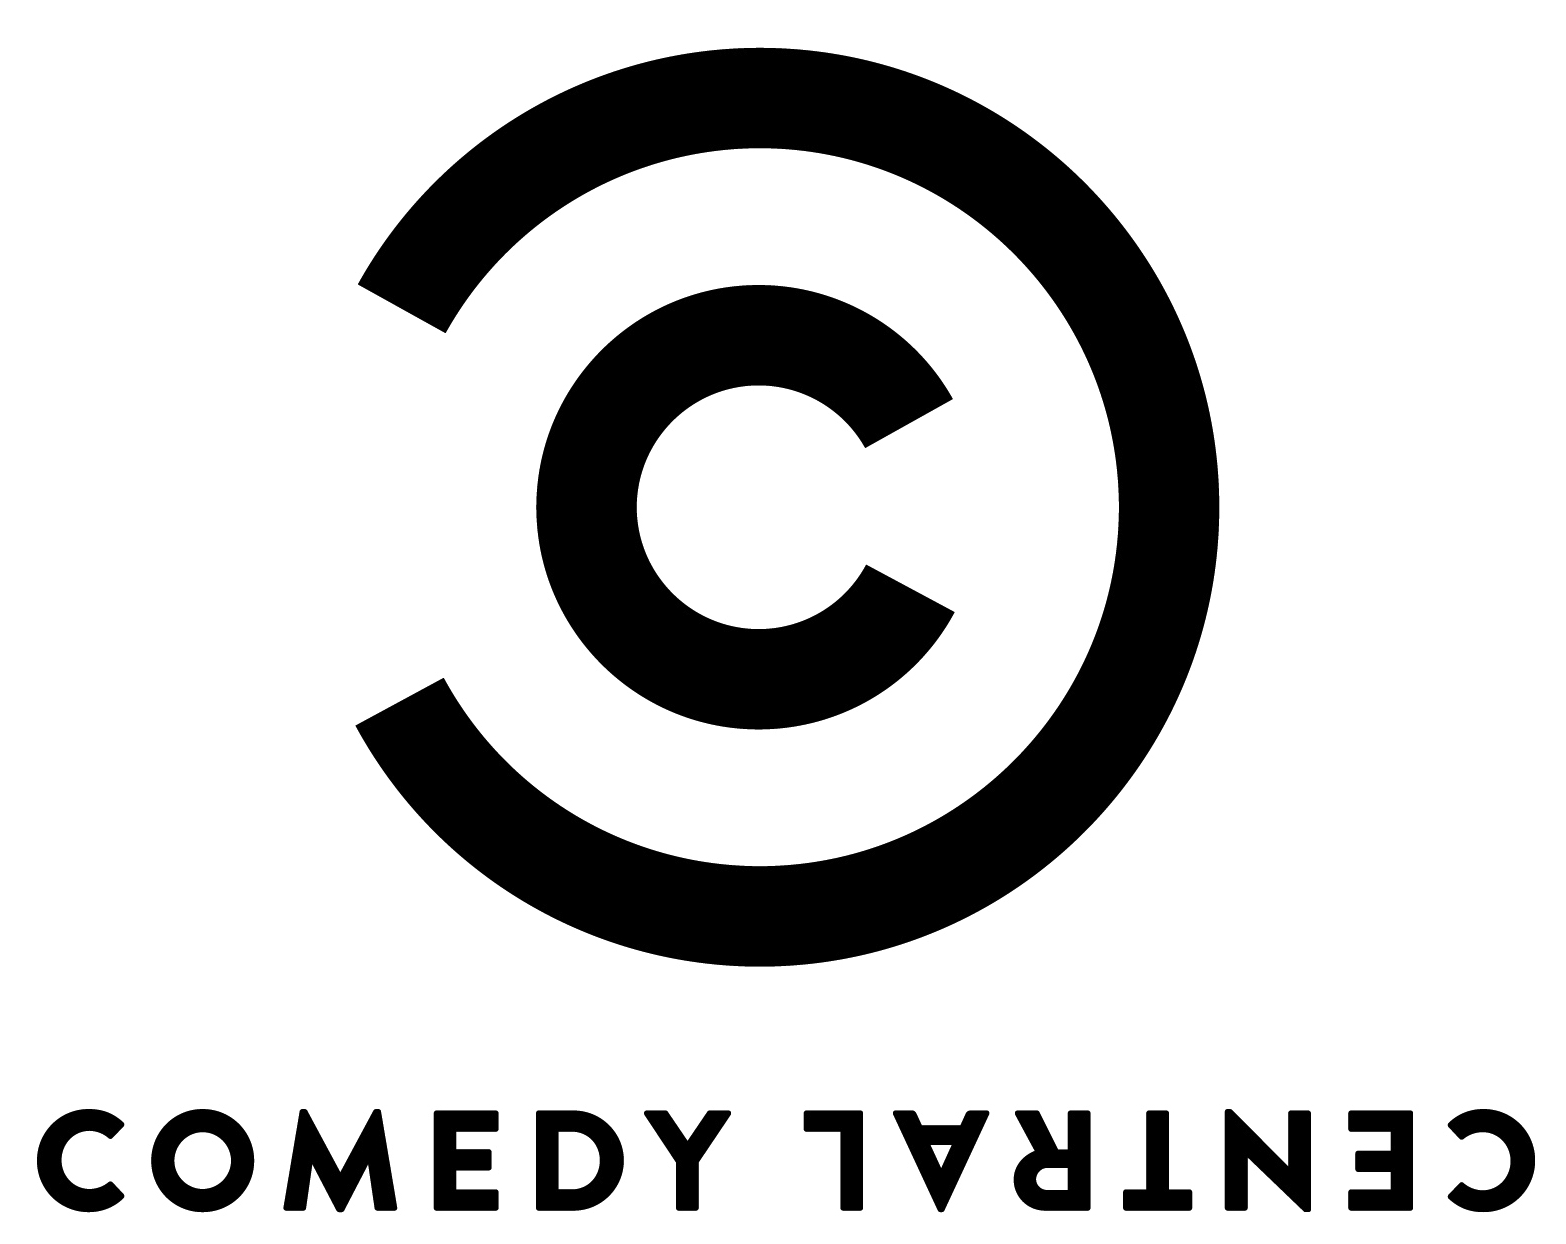 comedy central.jpeg